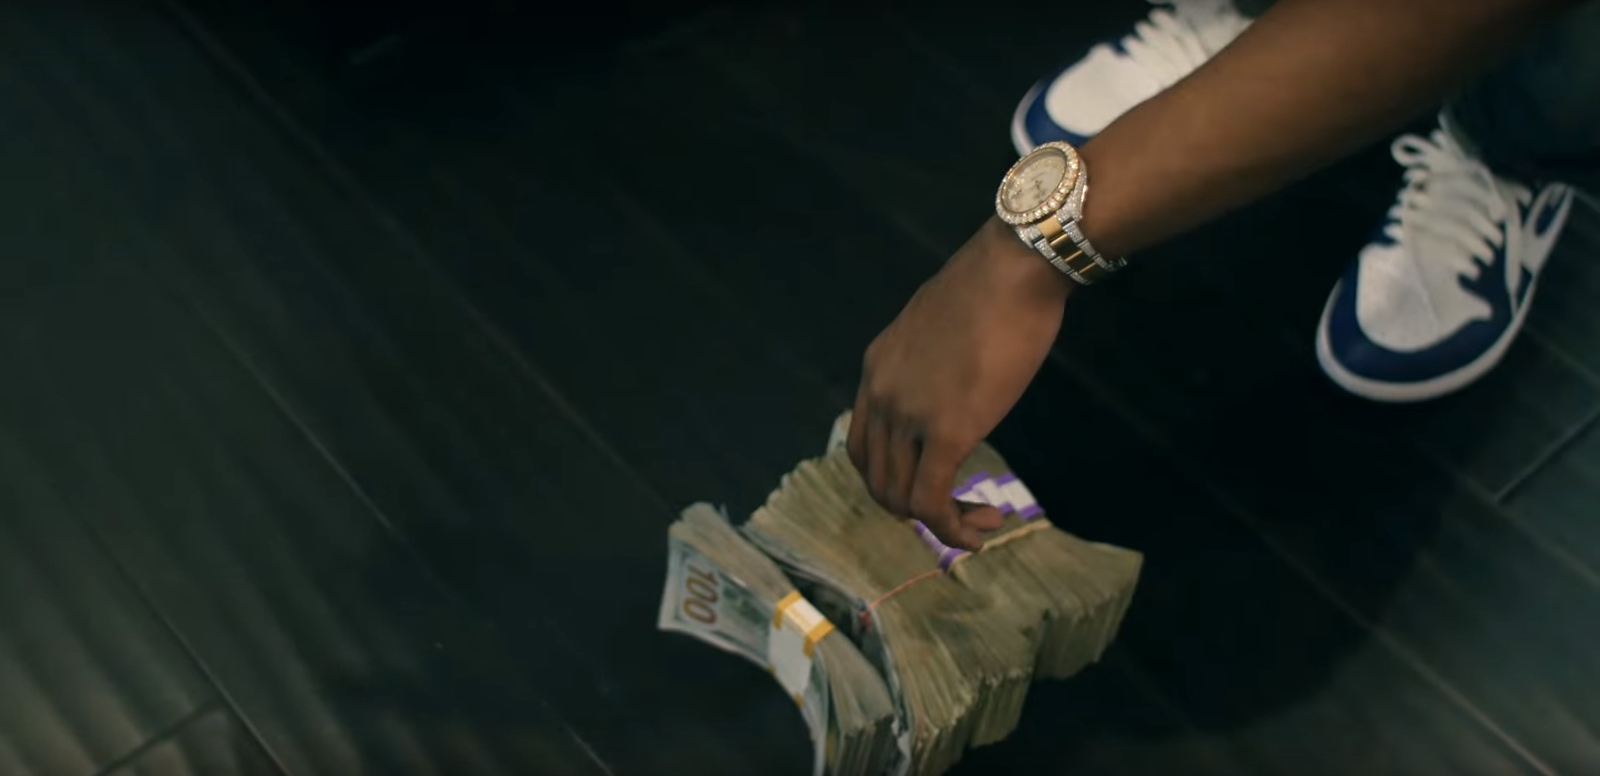 Nike Air Jordan Shoes And Rolex Watch - 41 - YoungBoy Never Broke Again (2017) Official Music Video Product Placement